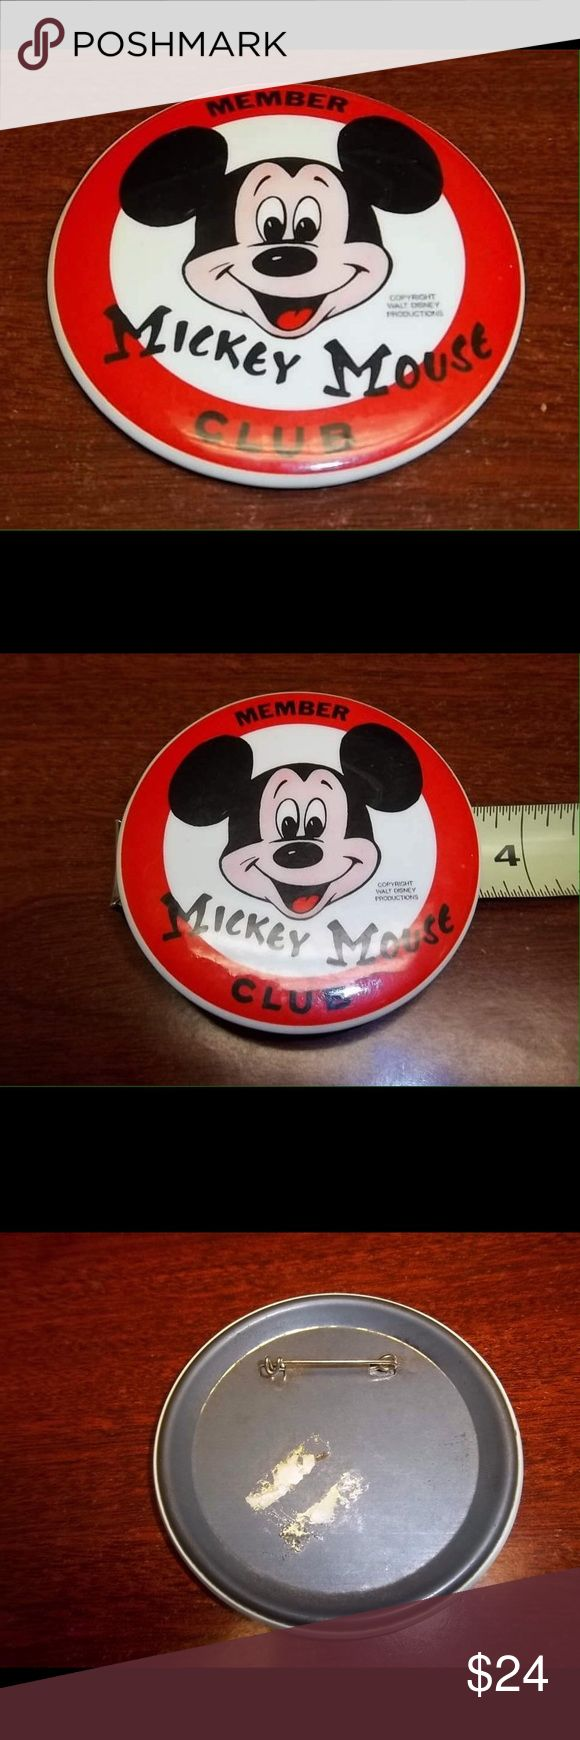 "Vintage Mickey Mouse Club Mouseketeers Member Pin Circa 1977 ""Member Mickey Mouse Club"" pin (for new Mickey Mouse Club). Walt Disney Productions, the pin is 3 1/2"" in diameter and the paint and design details are in very good condition for a piece of Disney Memorabilia of this age, the back has some sticker reside and scuffs, the pin portion still functions and this could be worn if desired  This would make a great gift for any Disney Fan! Disney Other"